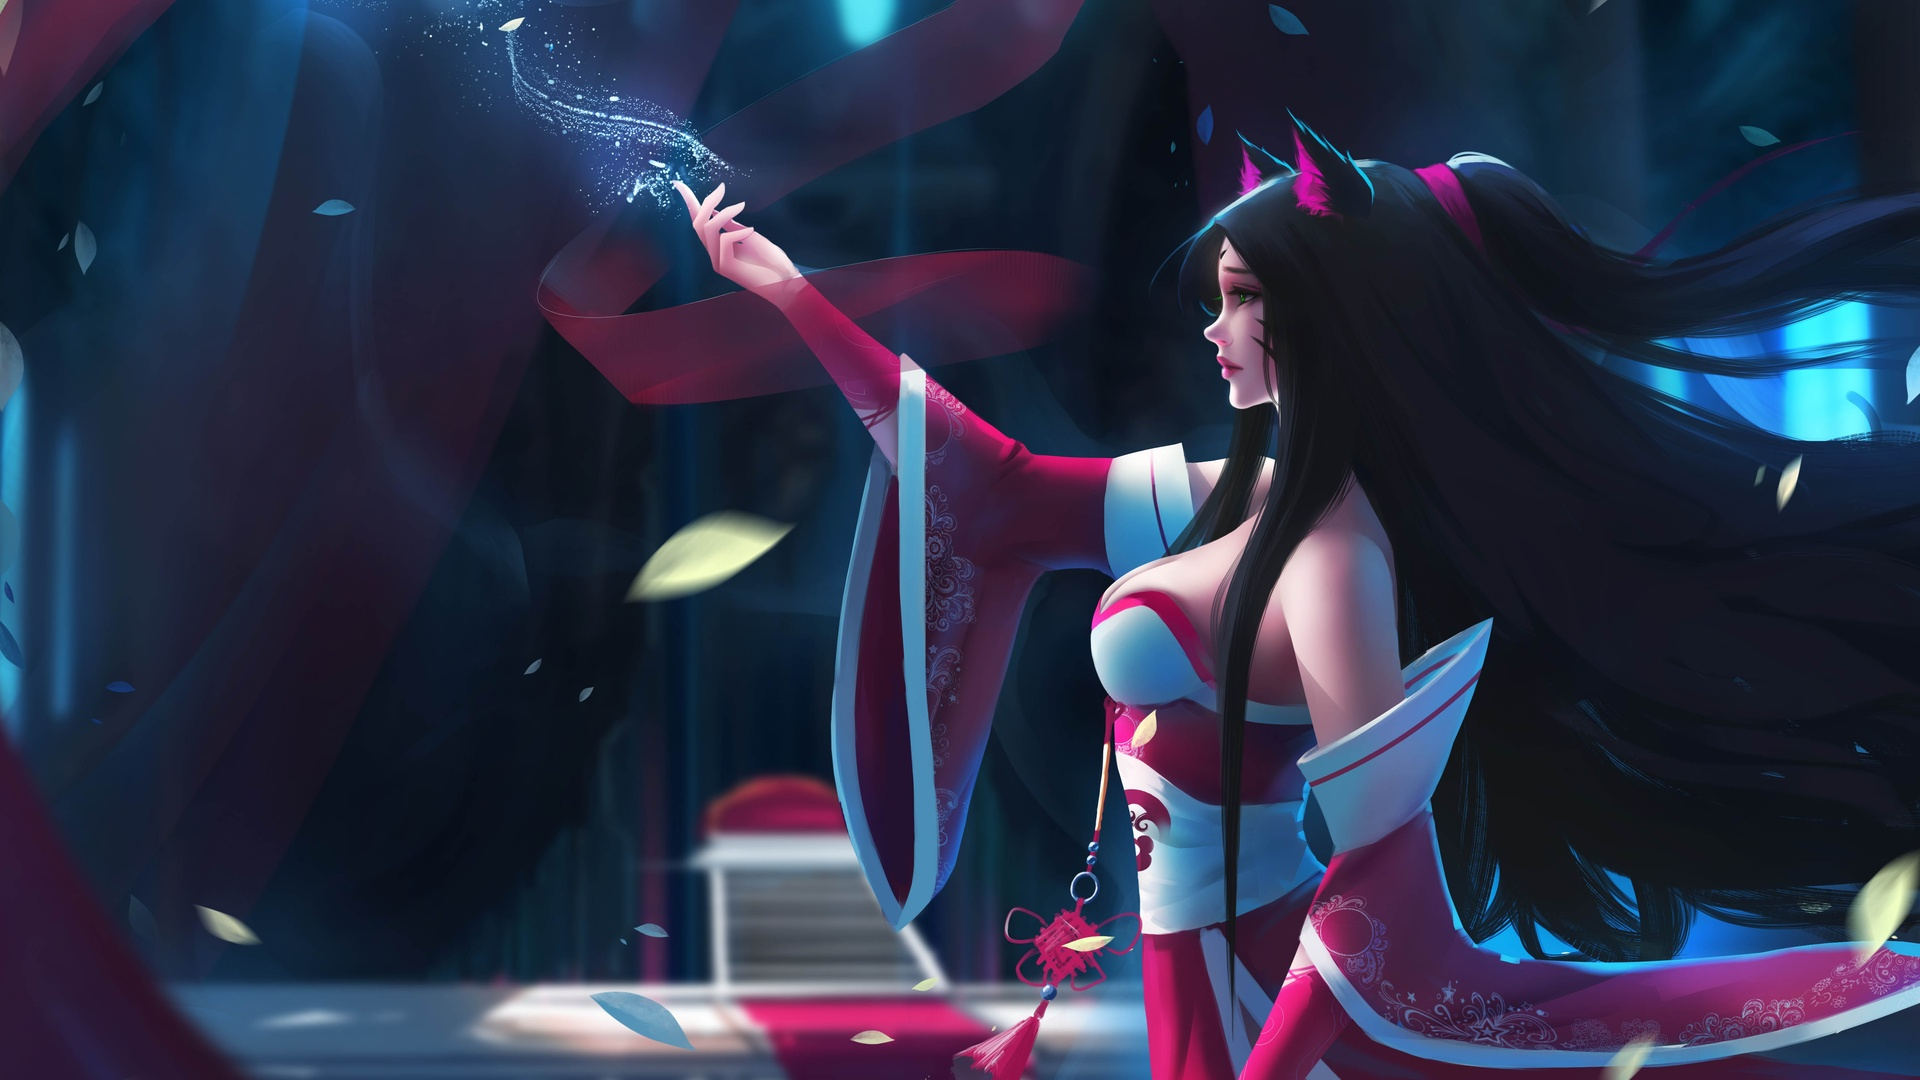 1920x1080 Ahri League Of Legends Fan Art 4k Laptop Full Hd 1080p